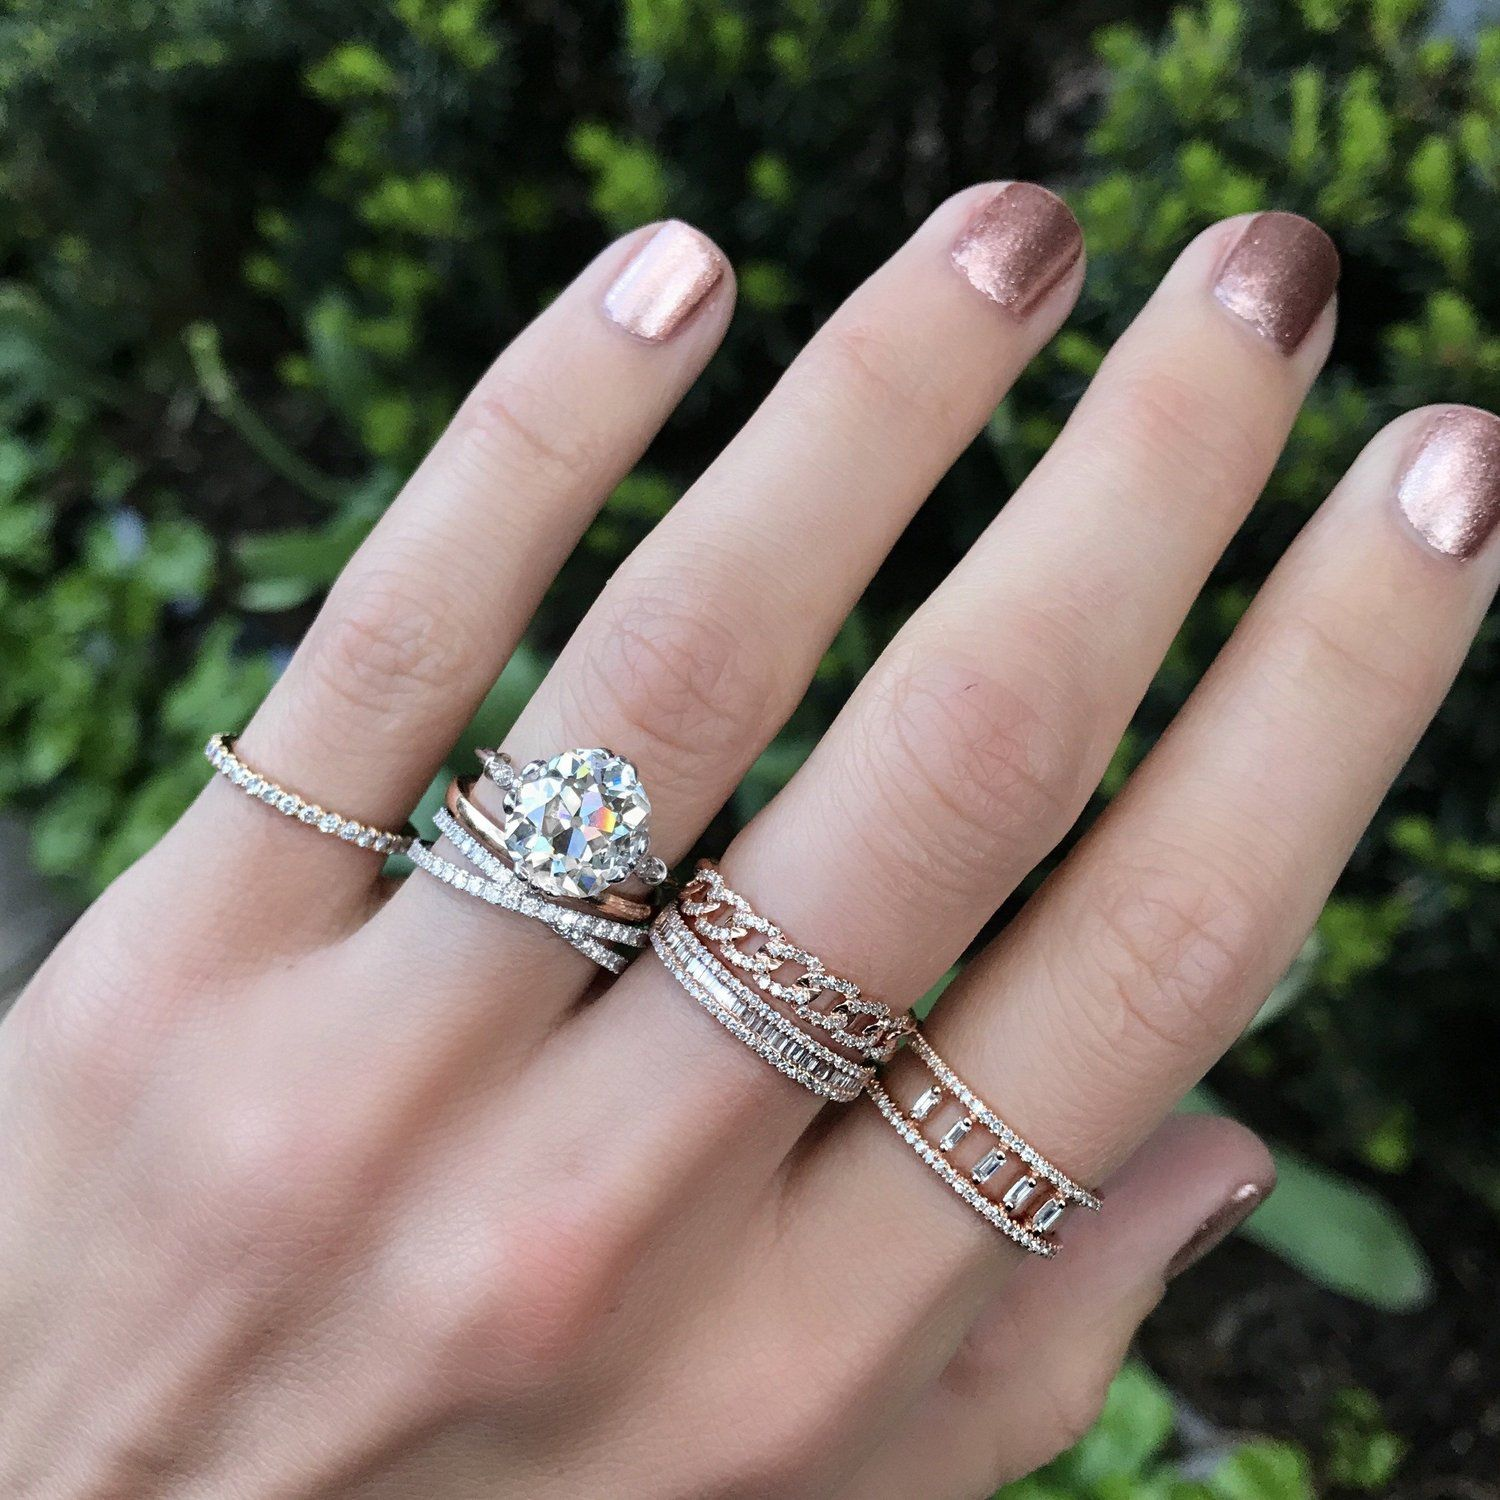 This crisscross diamond band is perfect for stacking and